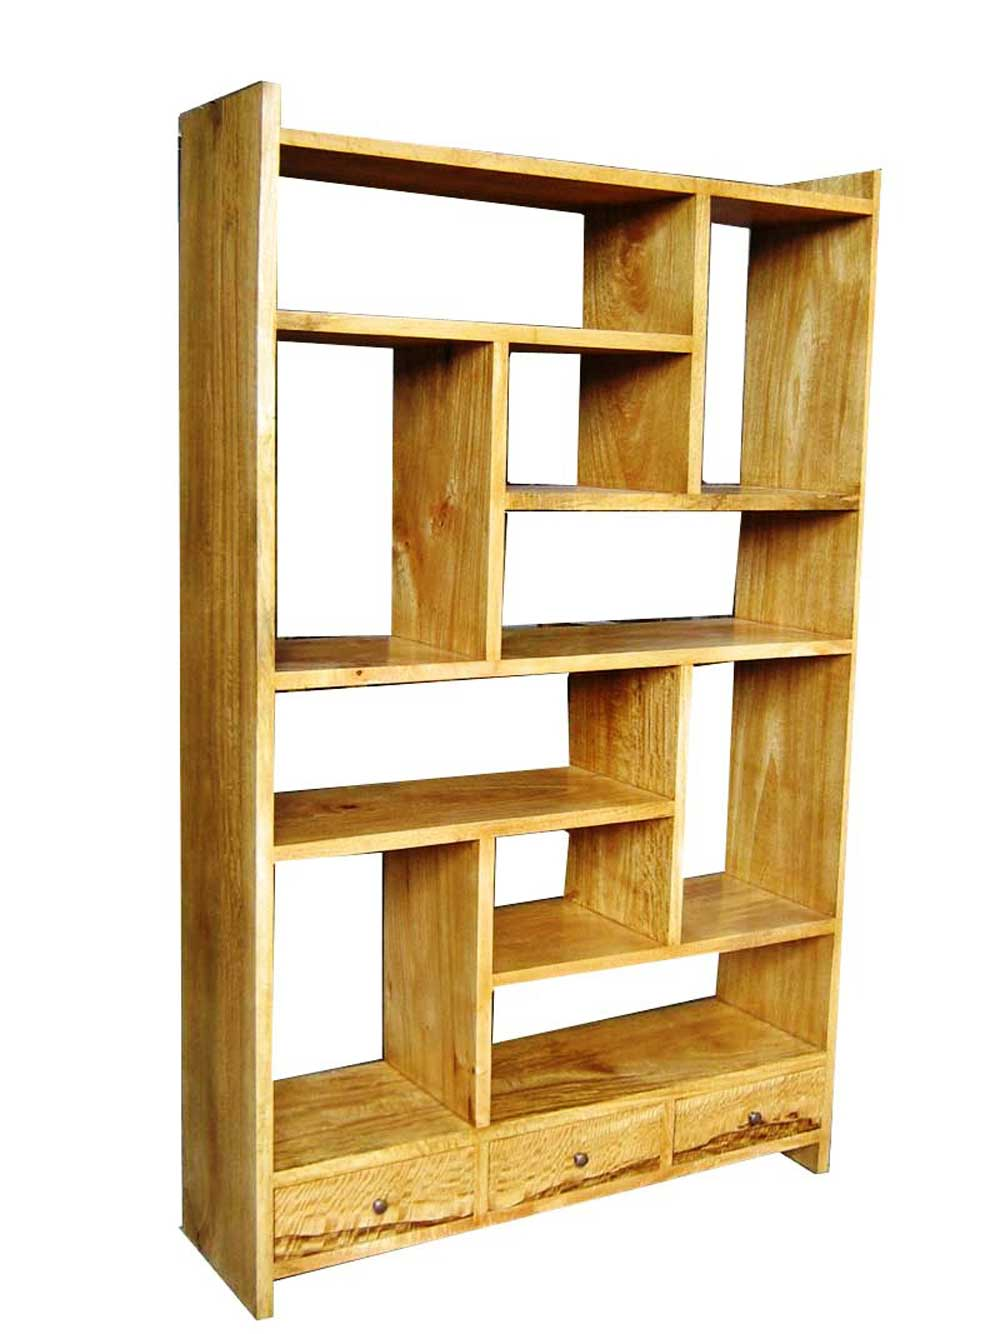 Permalink to simple wooden bookshelf plans